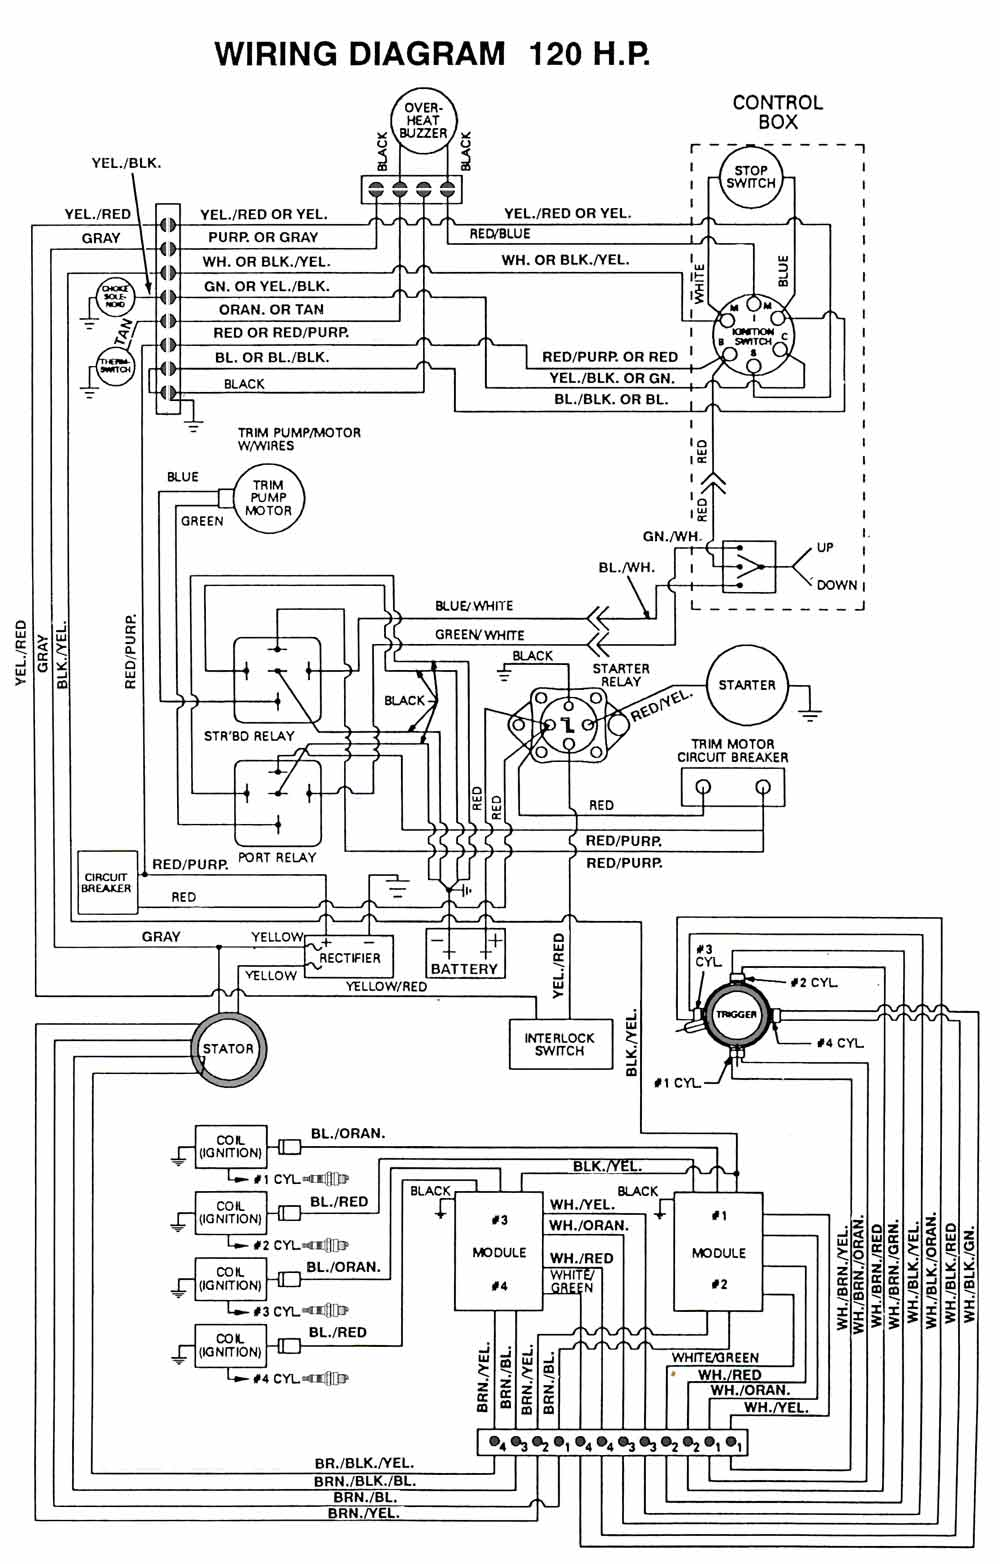 120 hp force outboard wiring diagram schematics wiring diagrams u2022 rh seniorlivinguniversity co force outboard motor wiring diagram force 90 outboard wiring diagram